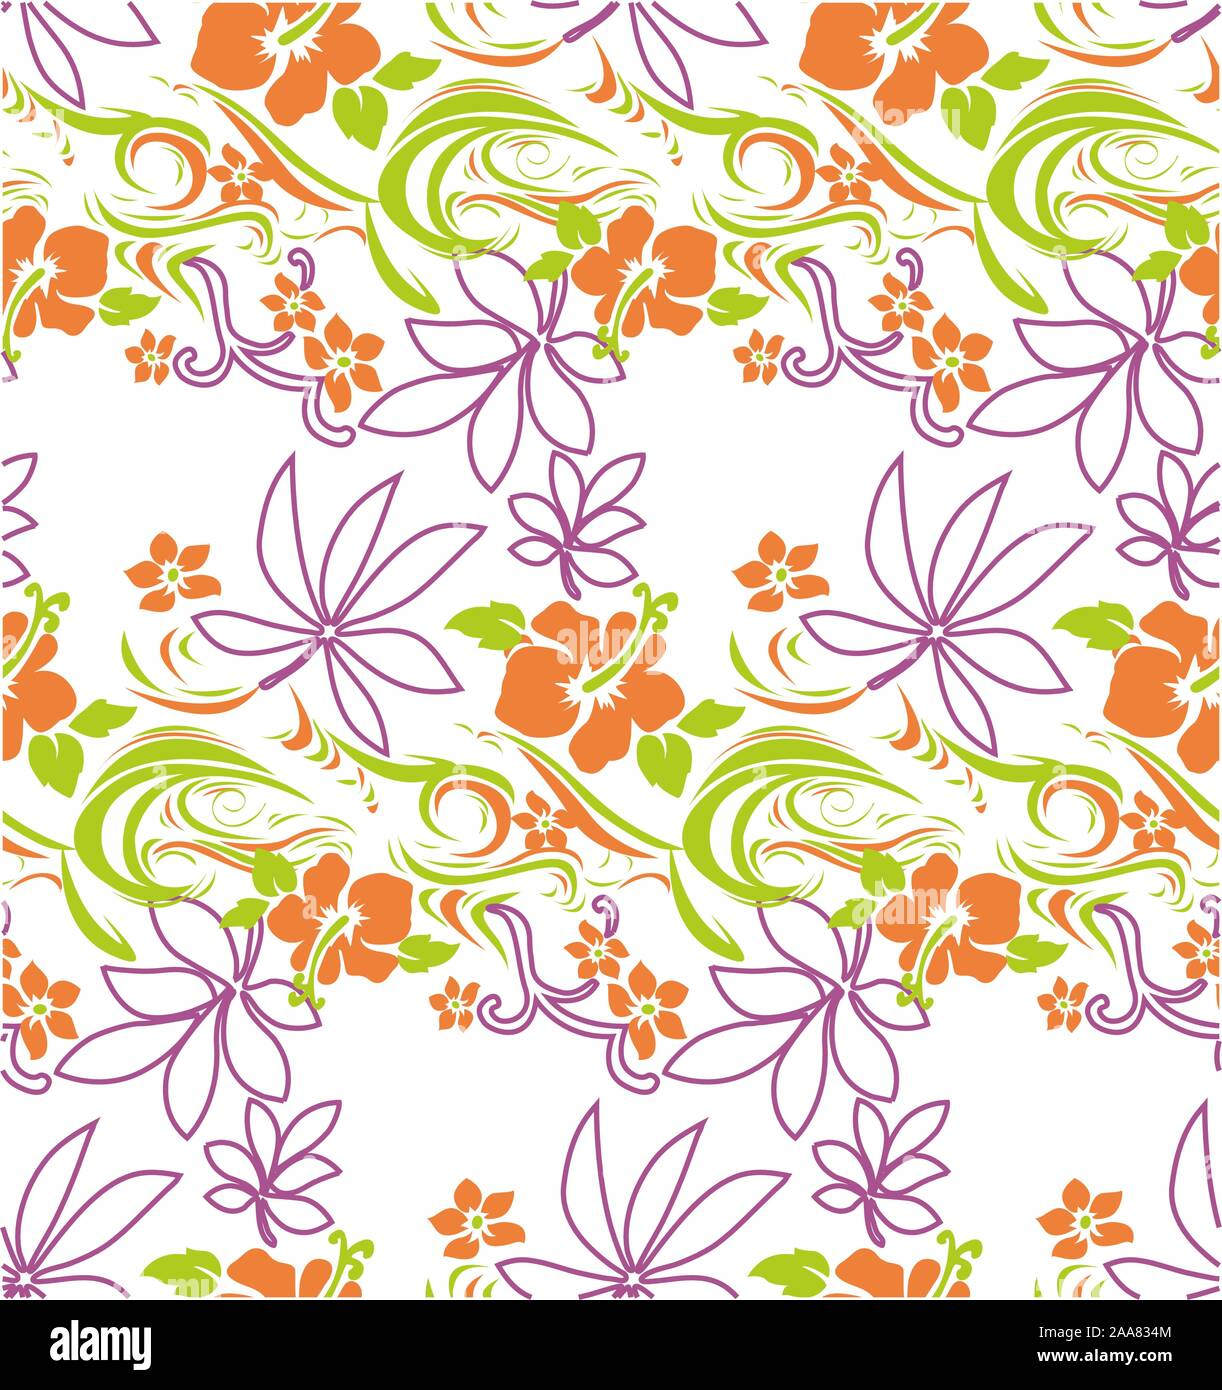 Cute colored vector flowers. Seamless floral pattern on white background. Stock Vector